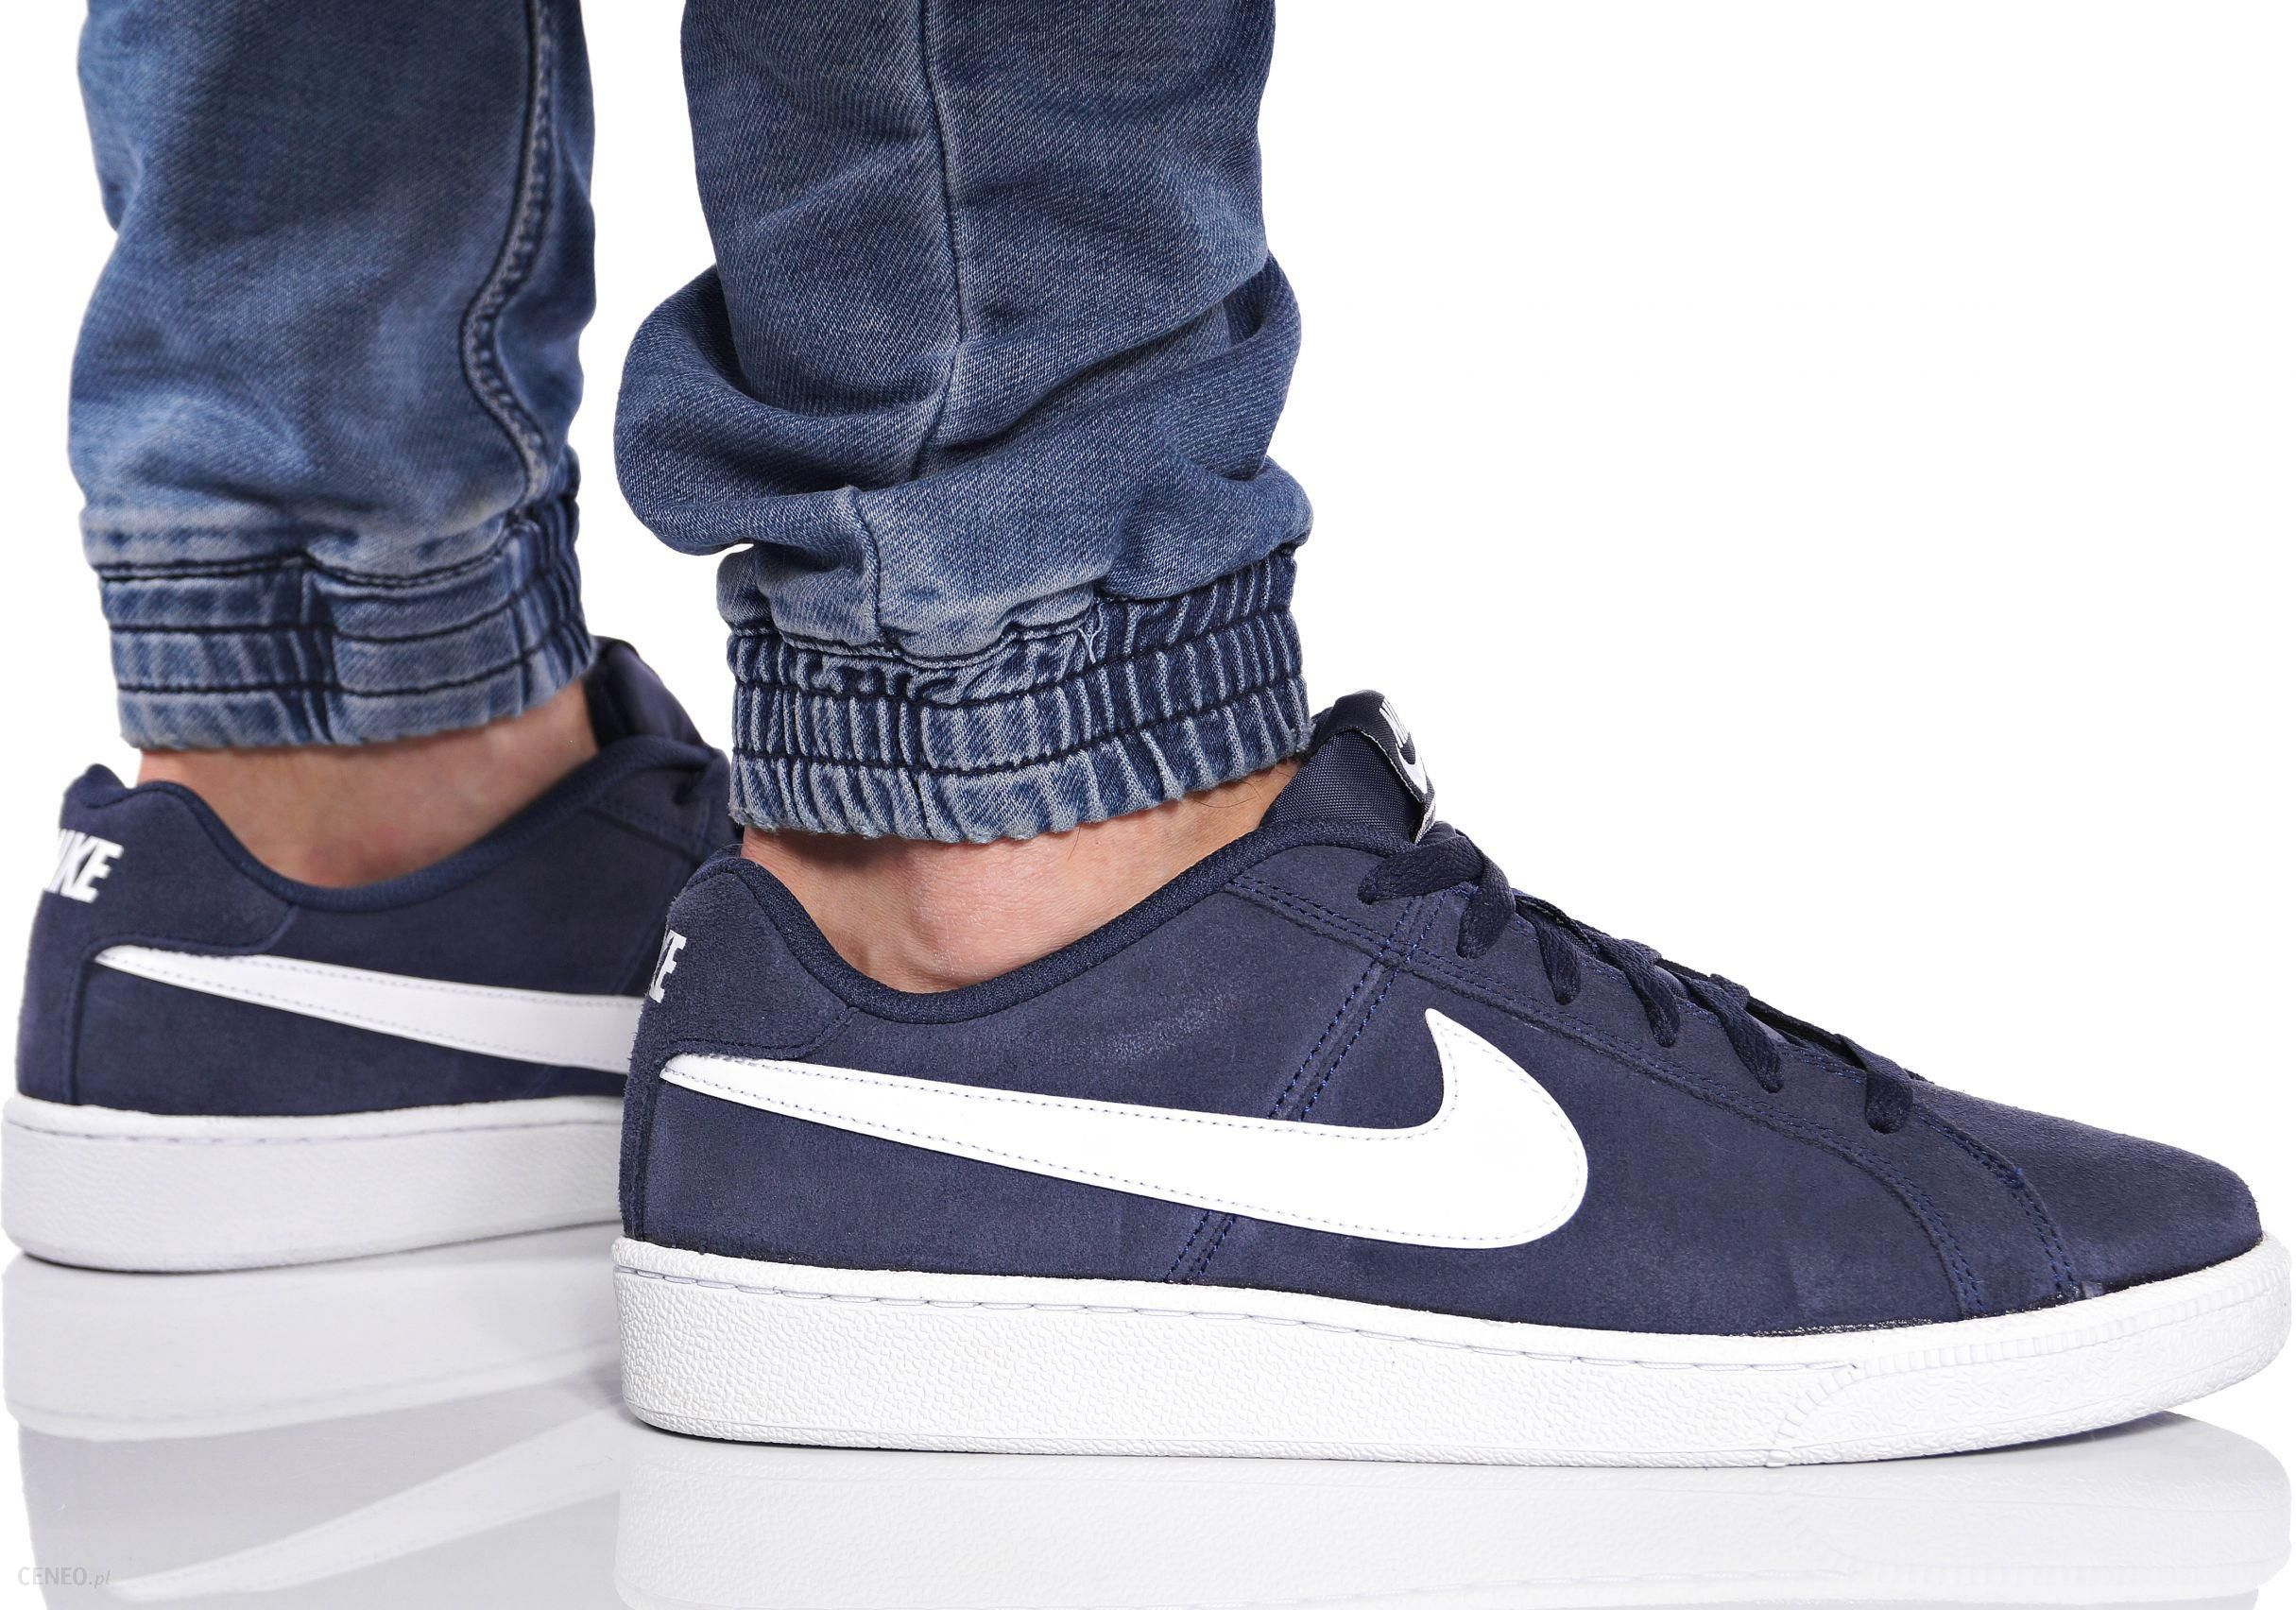 BUTY NIKE ROYALE SUEDE 819802